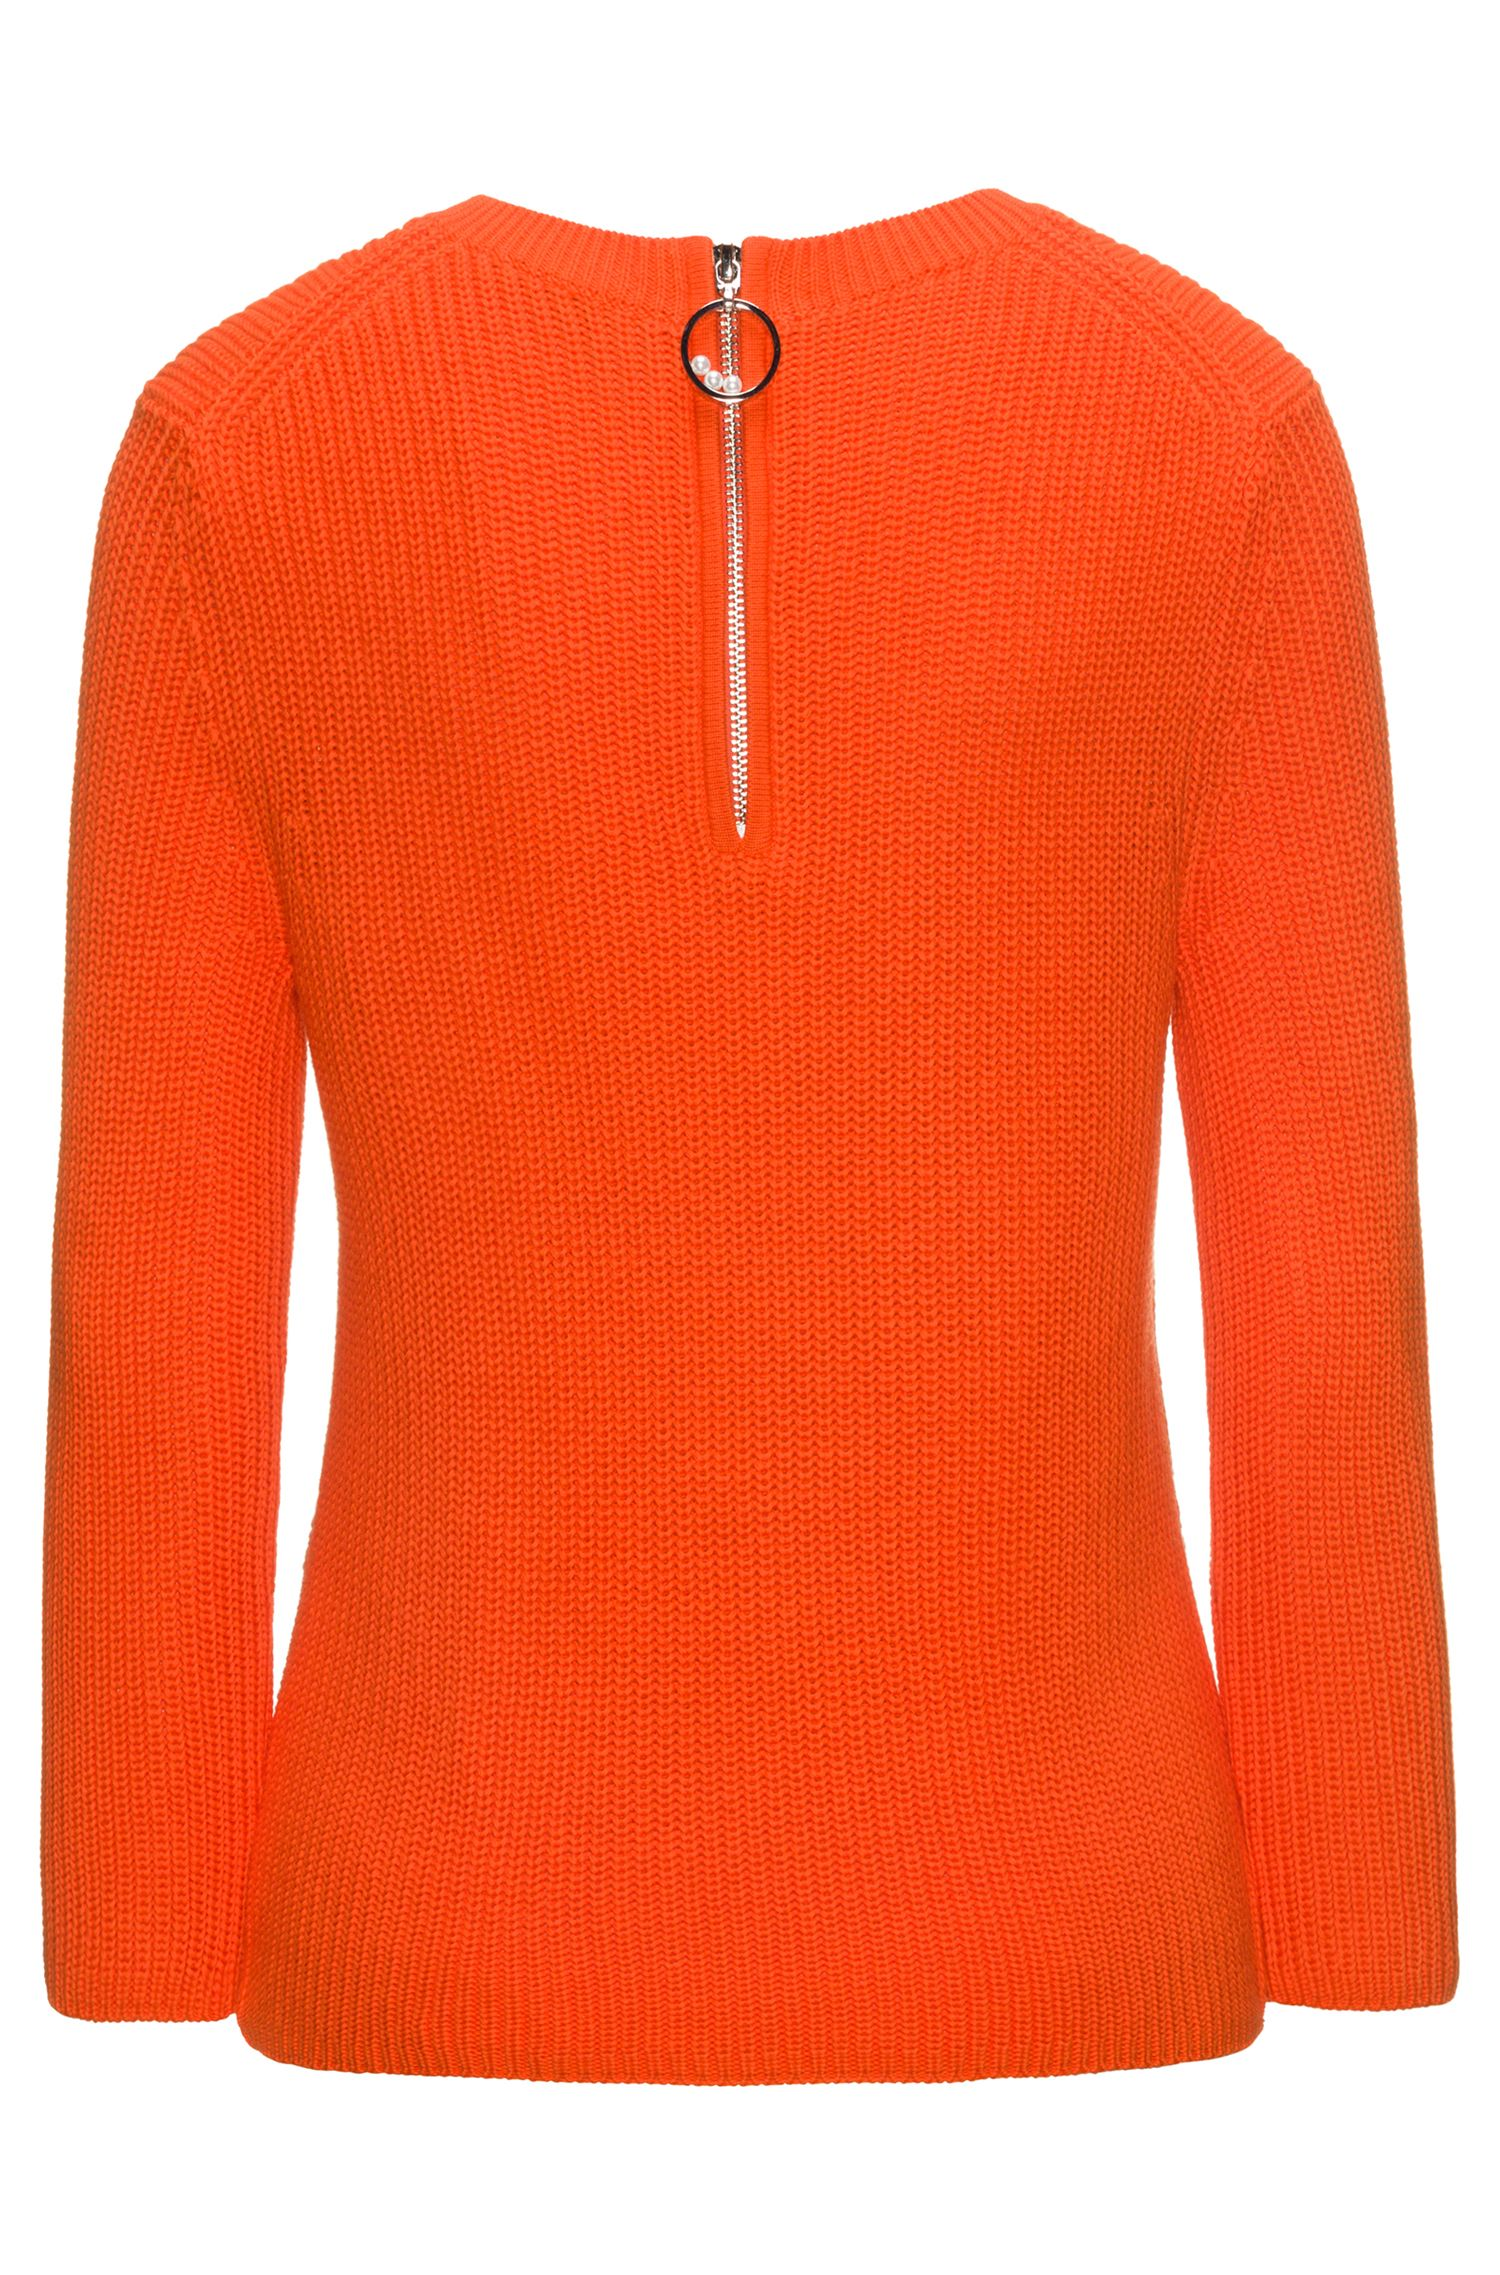 Half-cardigan knitted sweater in pure cotton, Orange